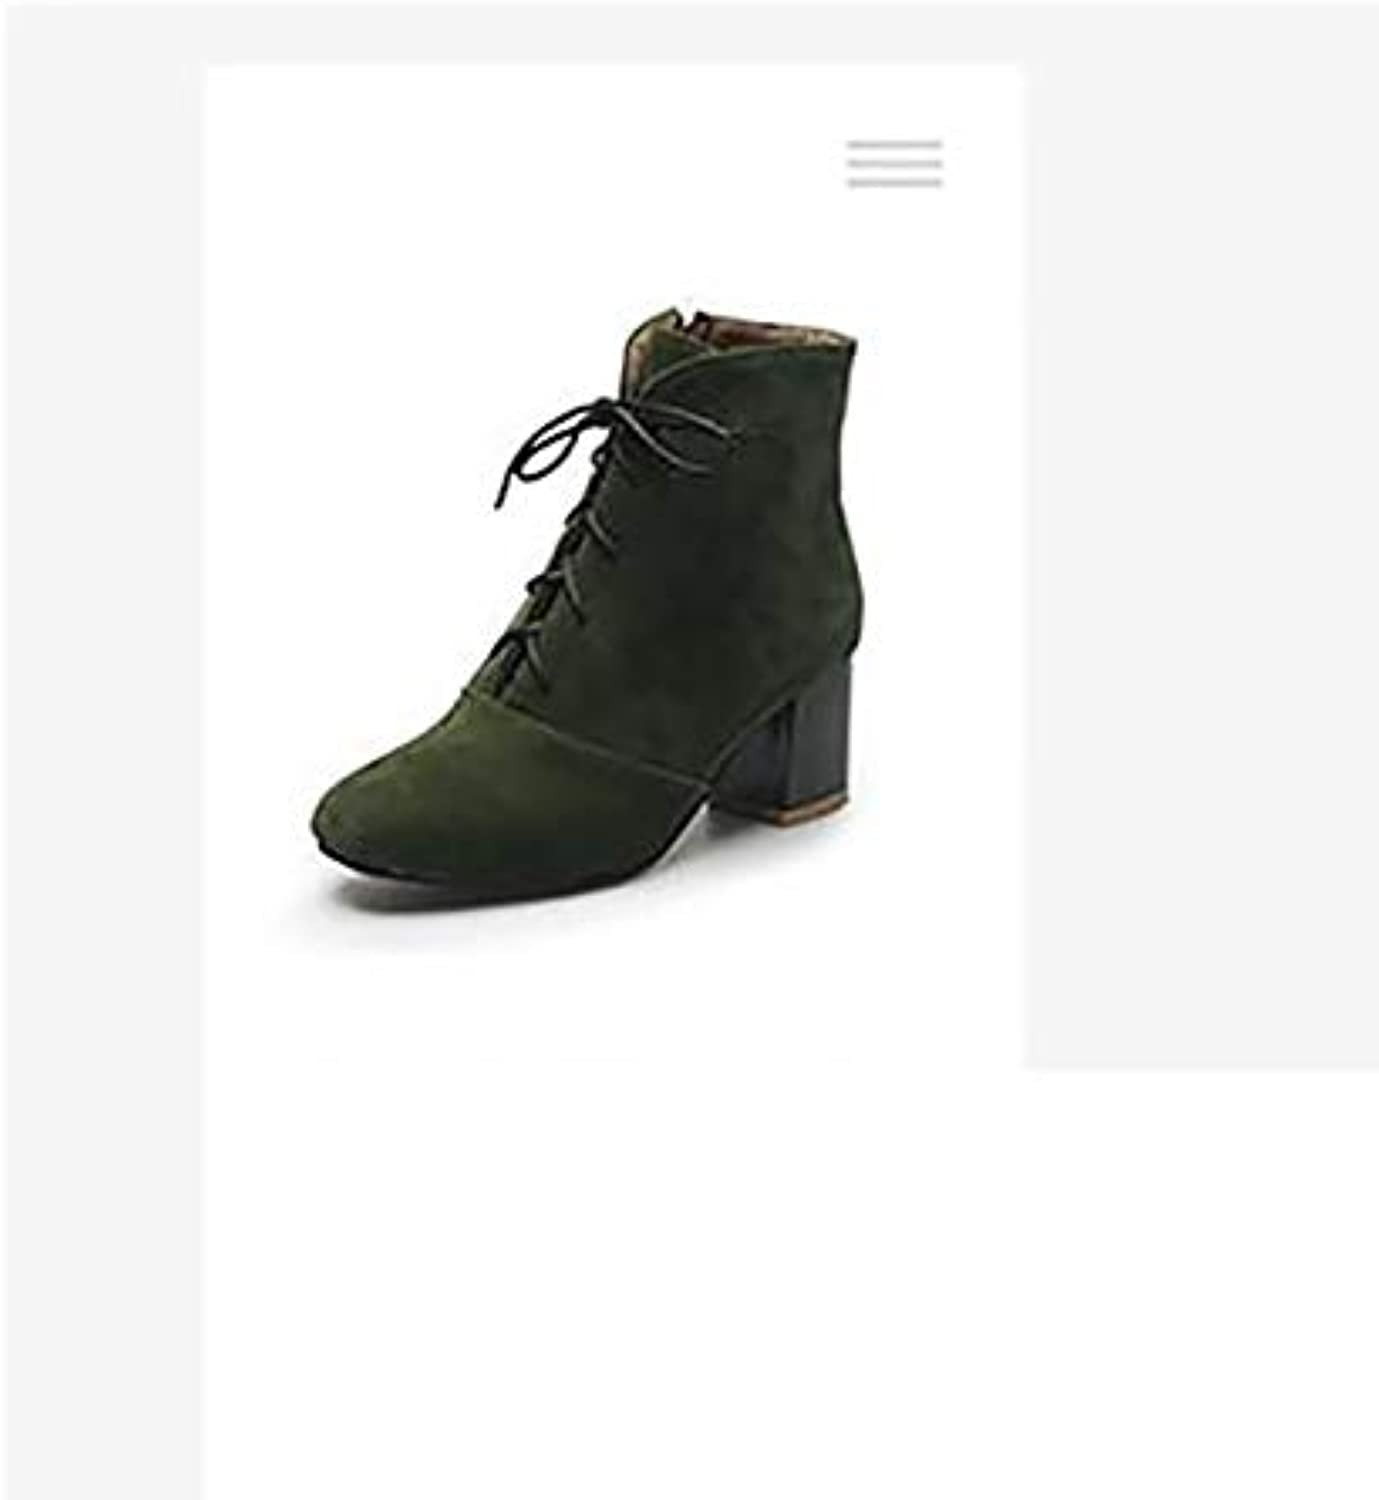 996ca1204615 JING Female heel shoes Autumn and winter thick with with with simple large  size women s boots side zipper boots B07HDNYY1W Parent 4a942e